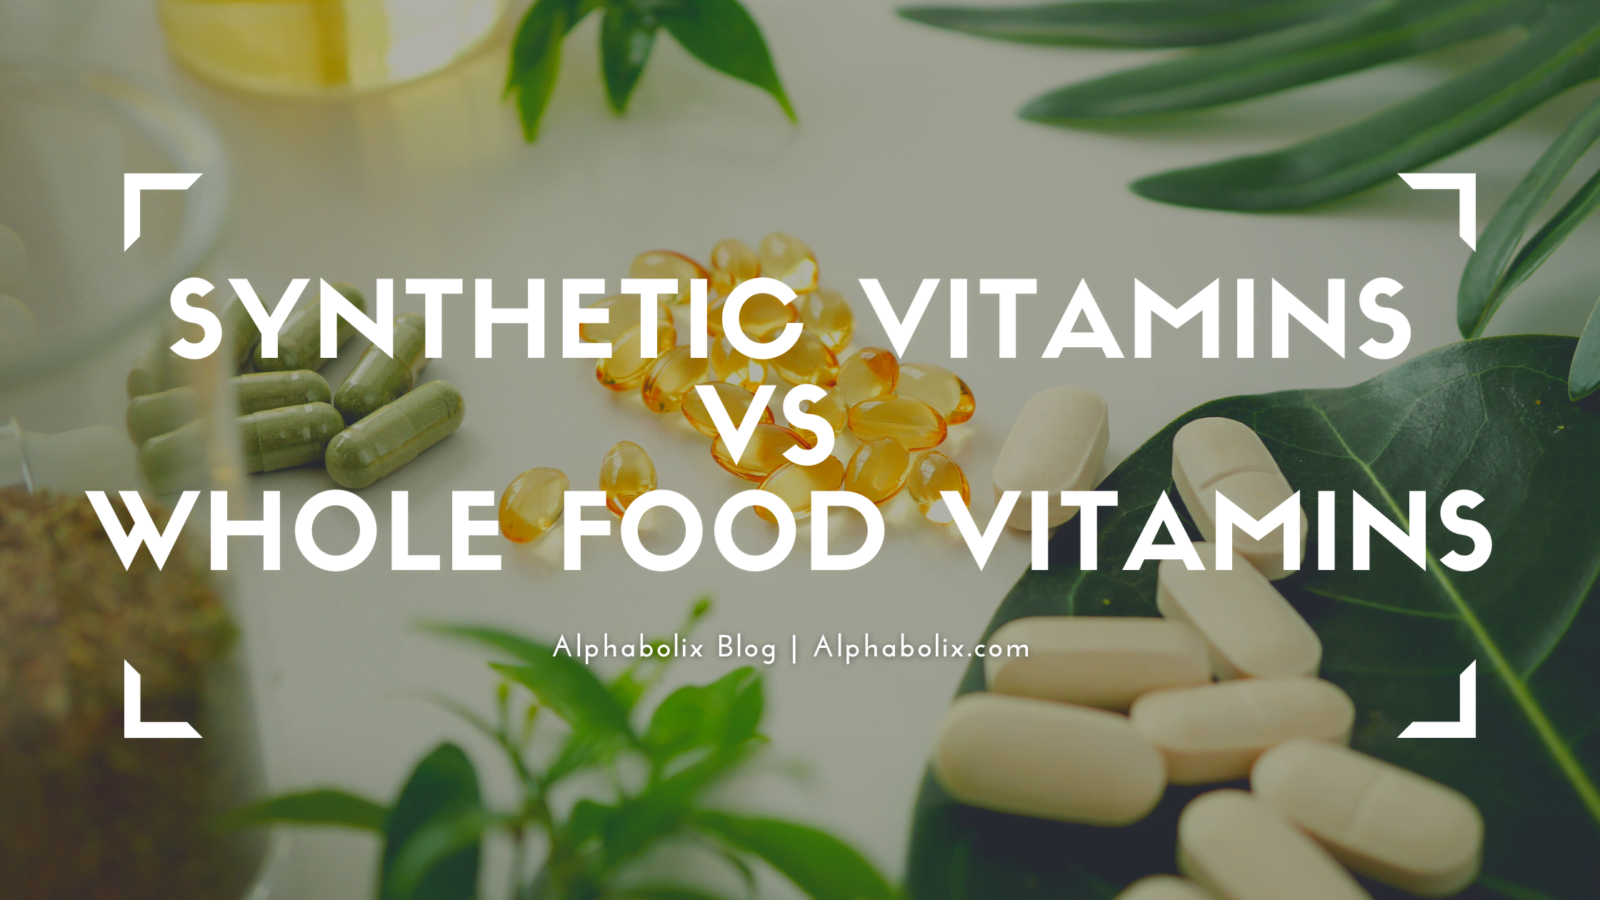 Synthetic Vitamins VS Whole Food Vitamins